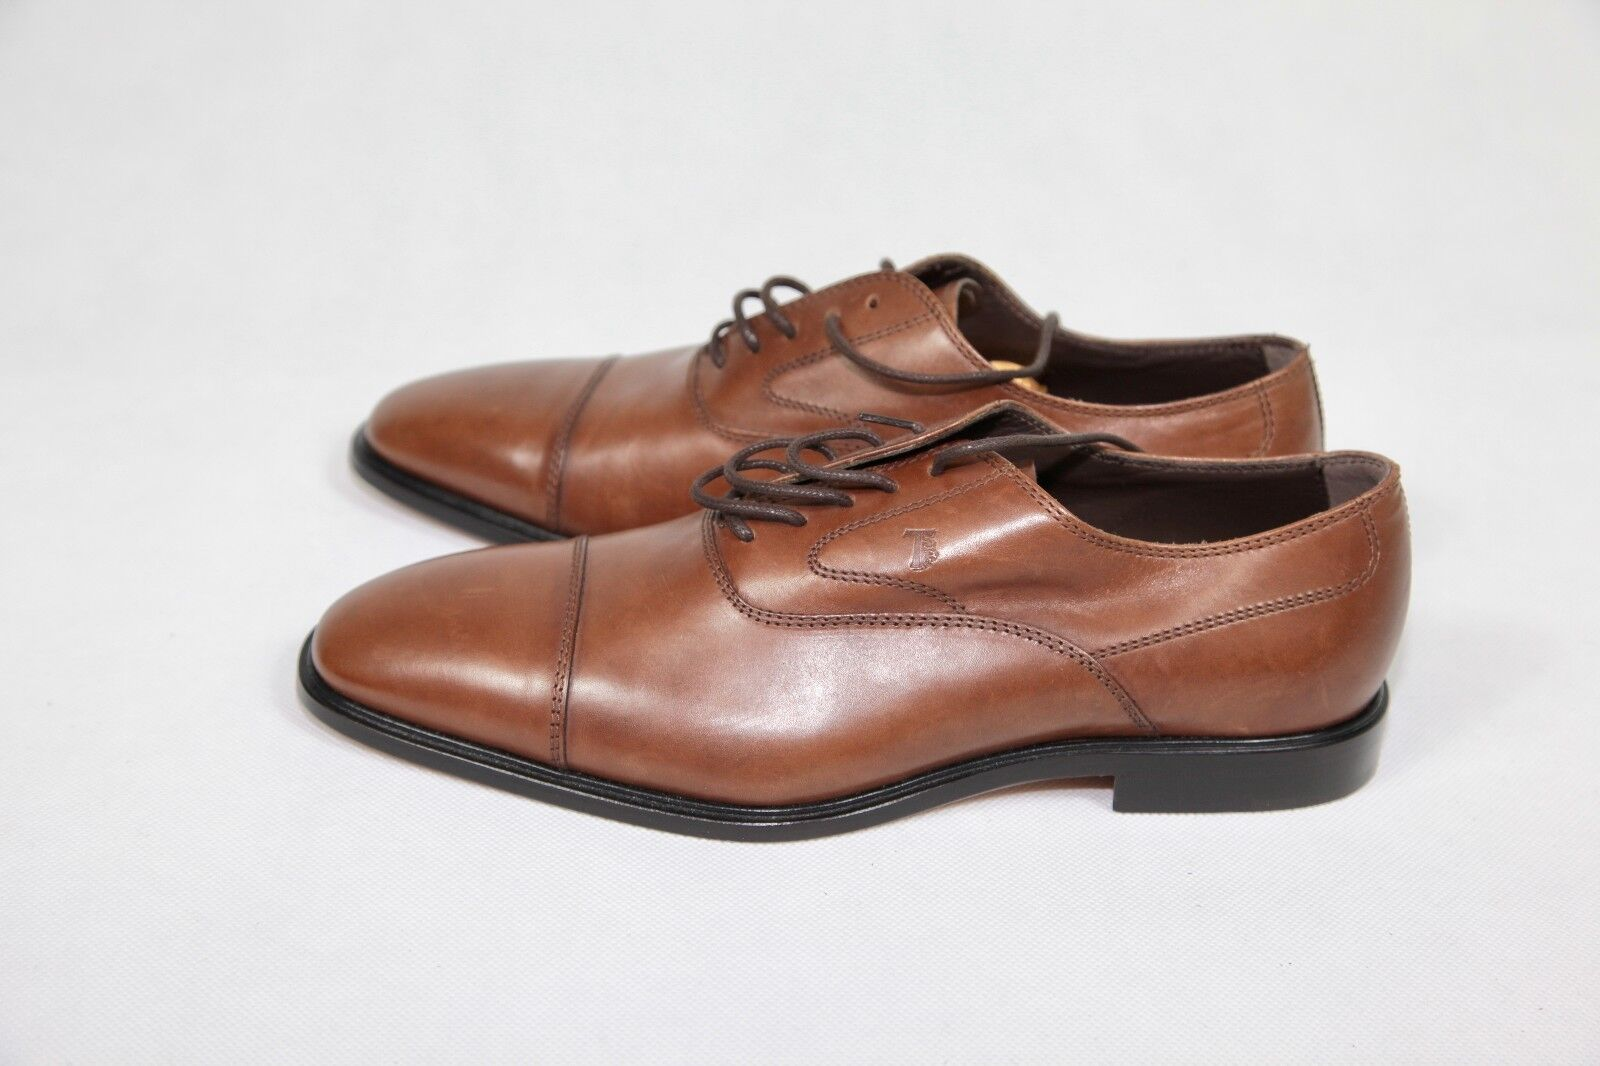 Tod's Tods New sz IT 7.5 US 8.5 Auth Leather Lace Up Cap Toe Derby shoes